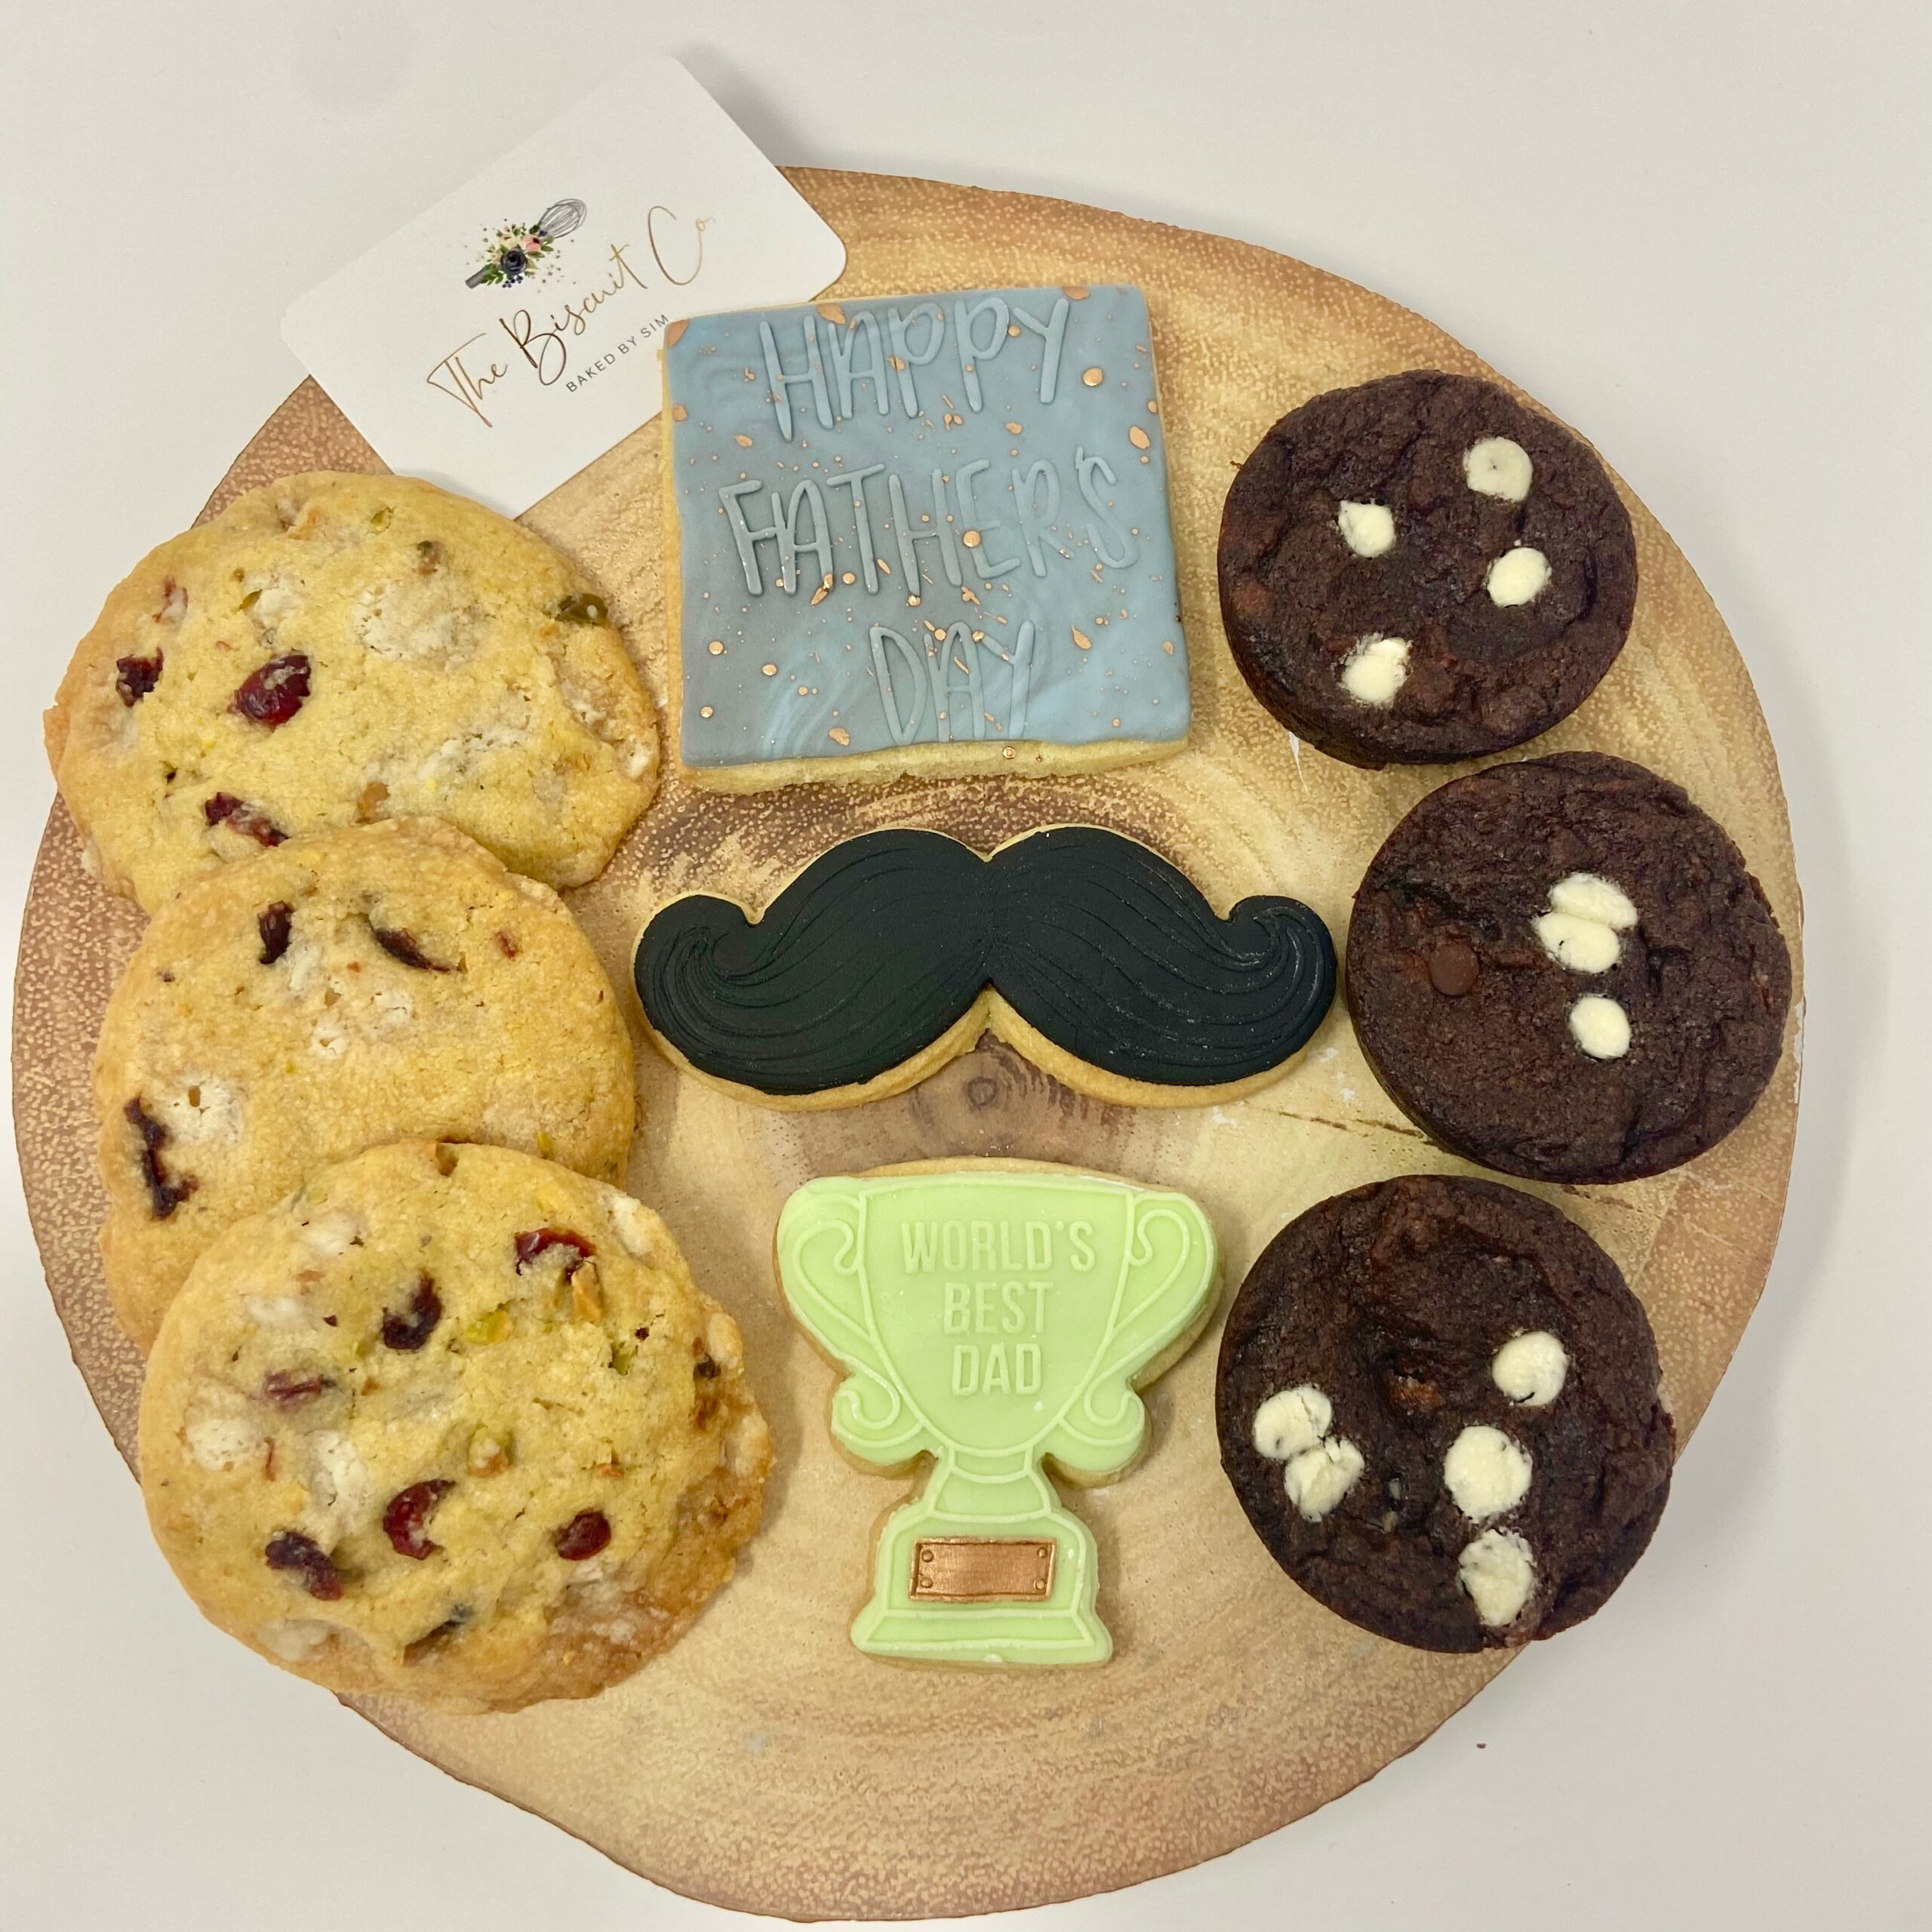 a gift for Father's Day biscuits